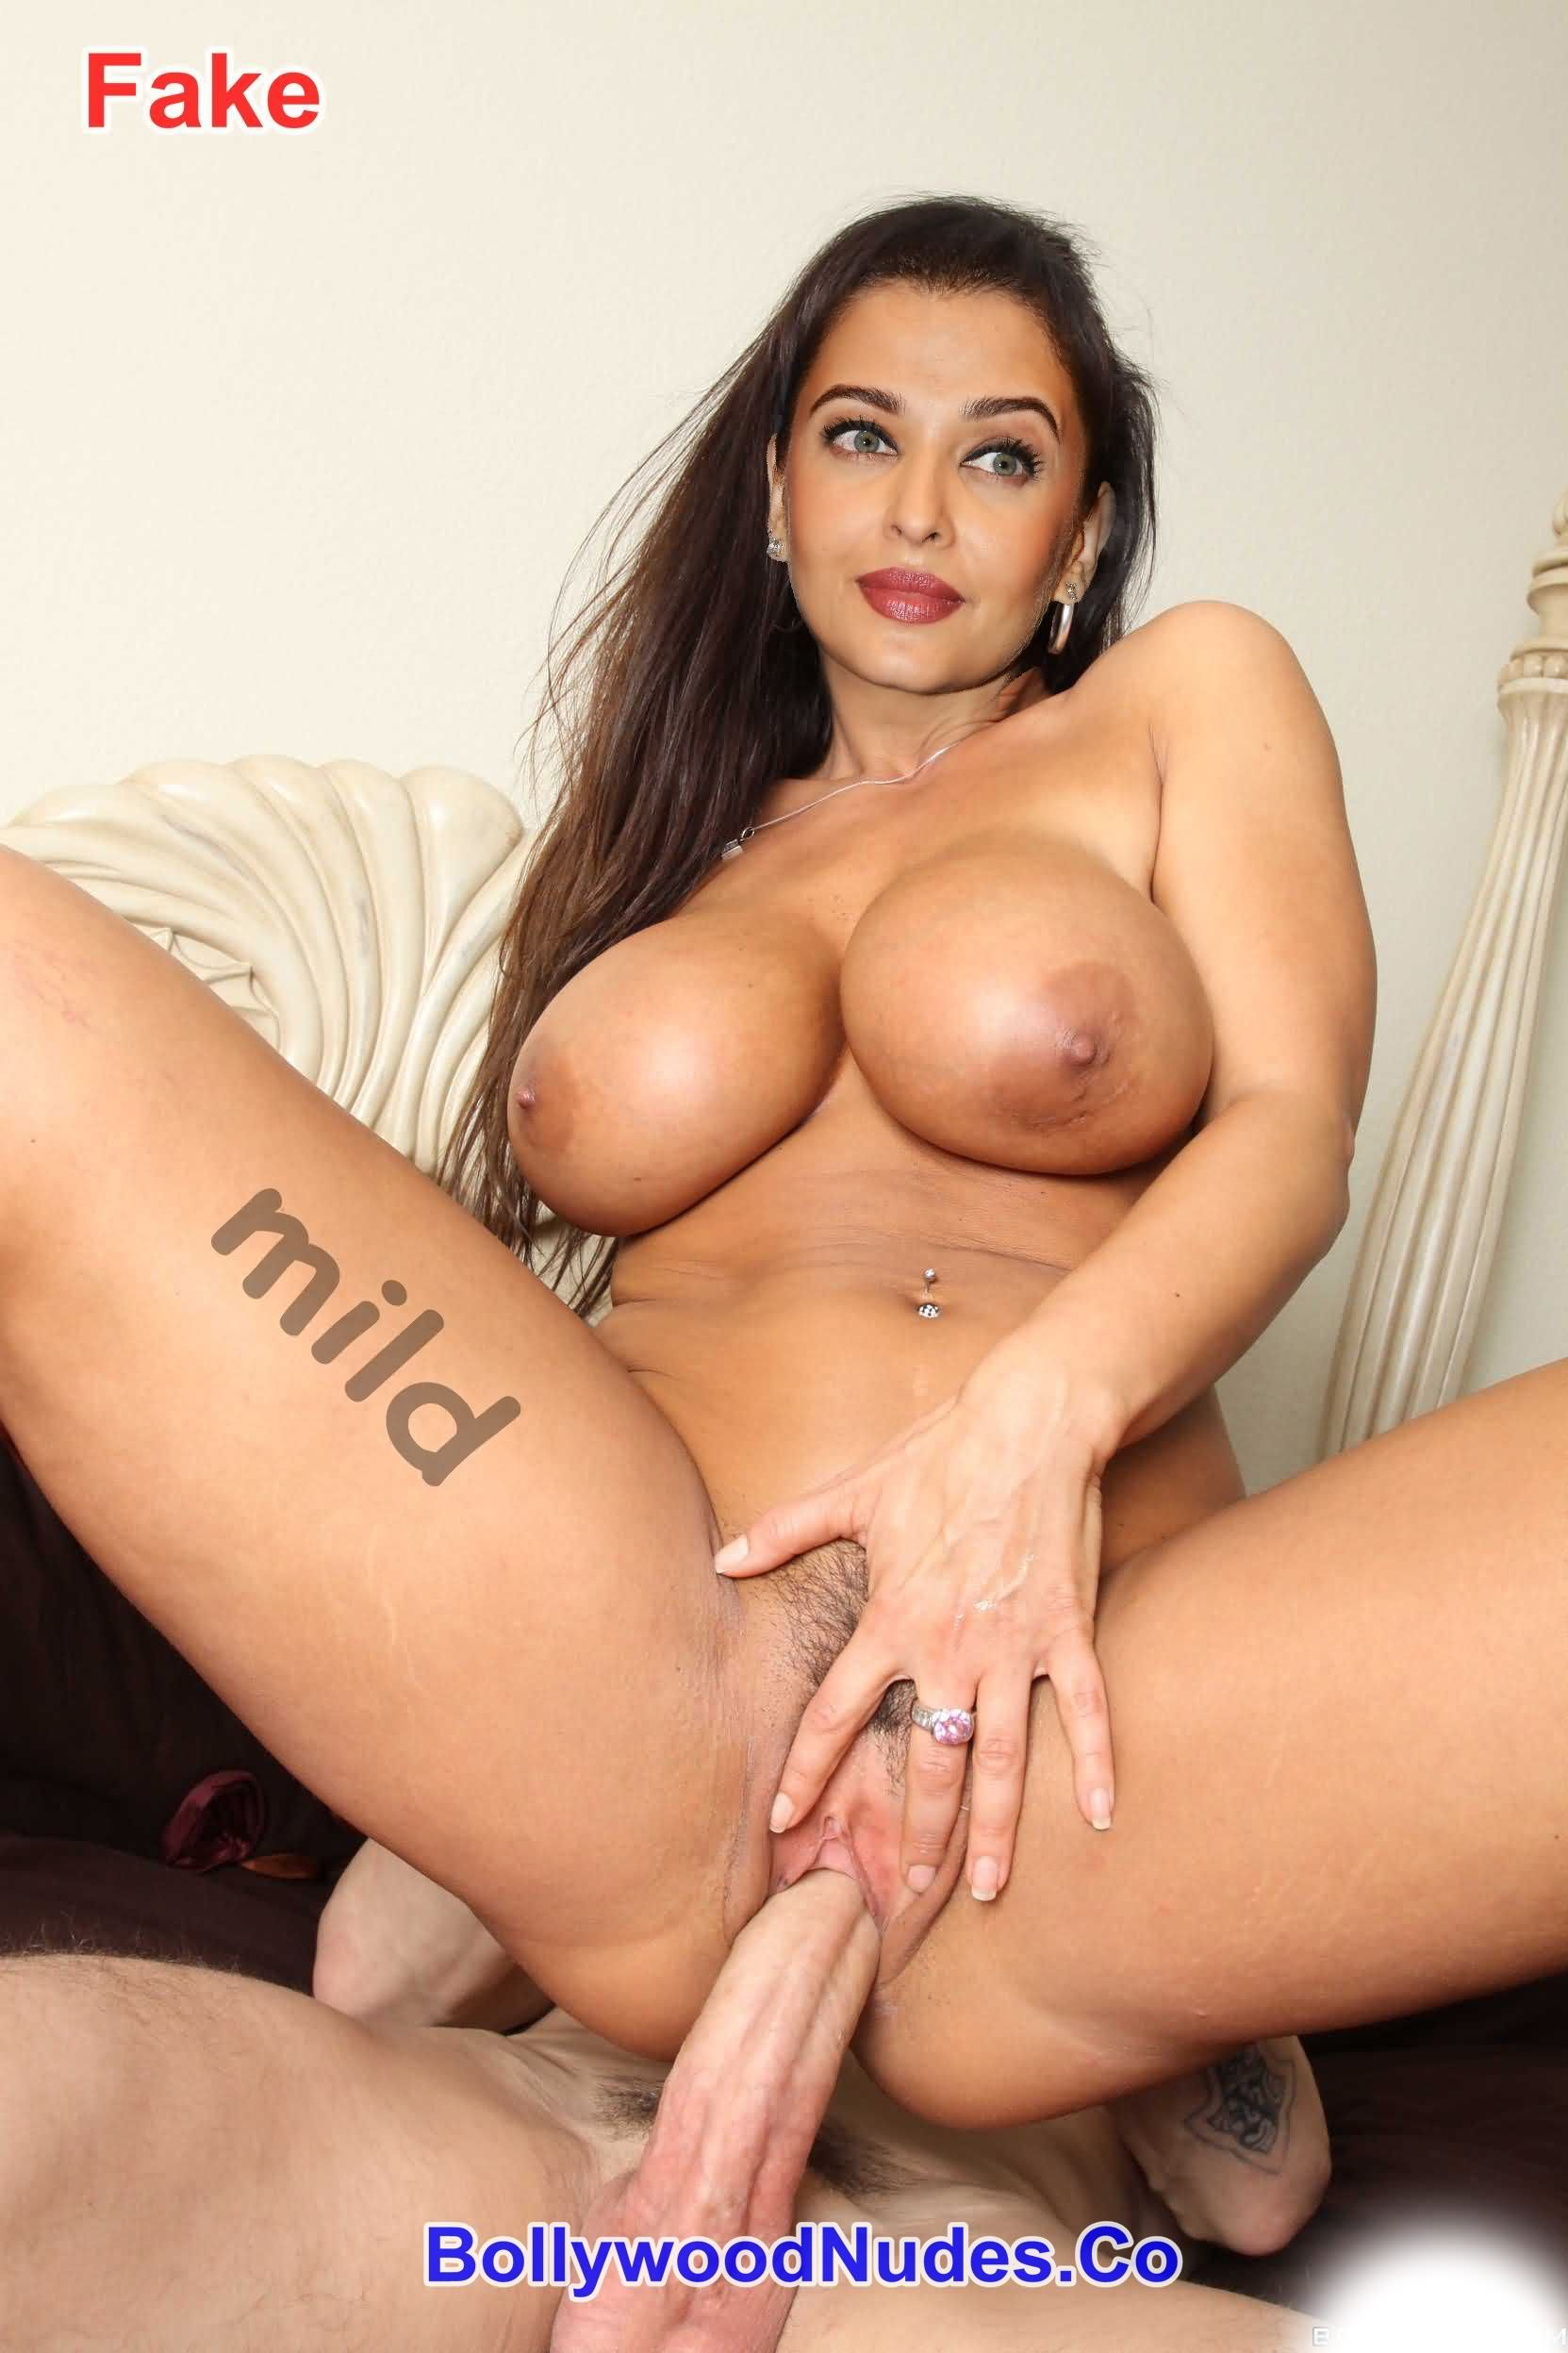 aishwarya-rai-fake-pron-aunty-having-sex-pic